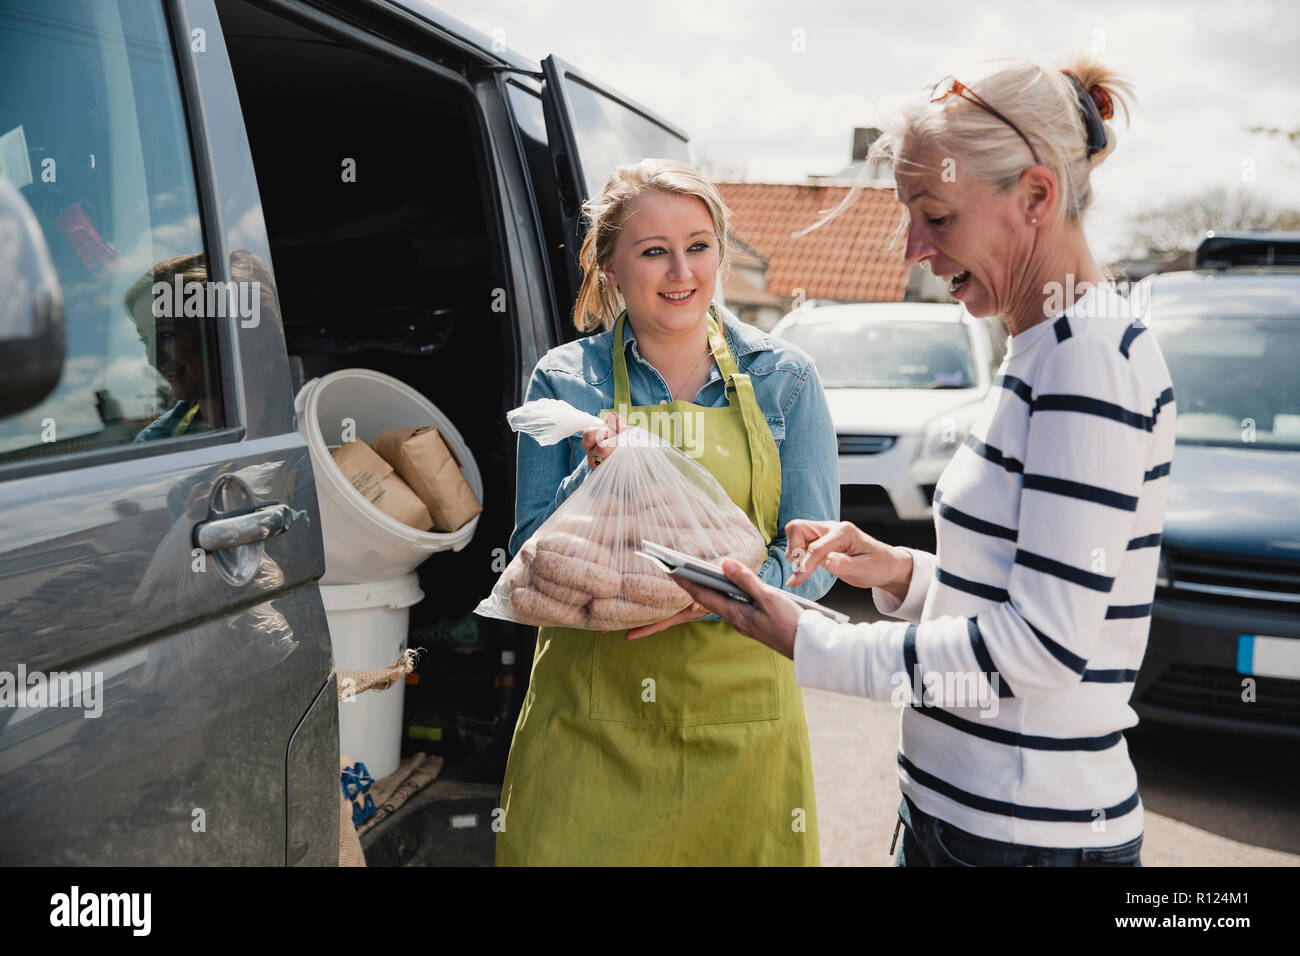 Ordering From A Food Van Stock Photos & Ordering From A Food